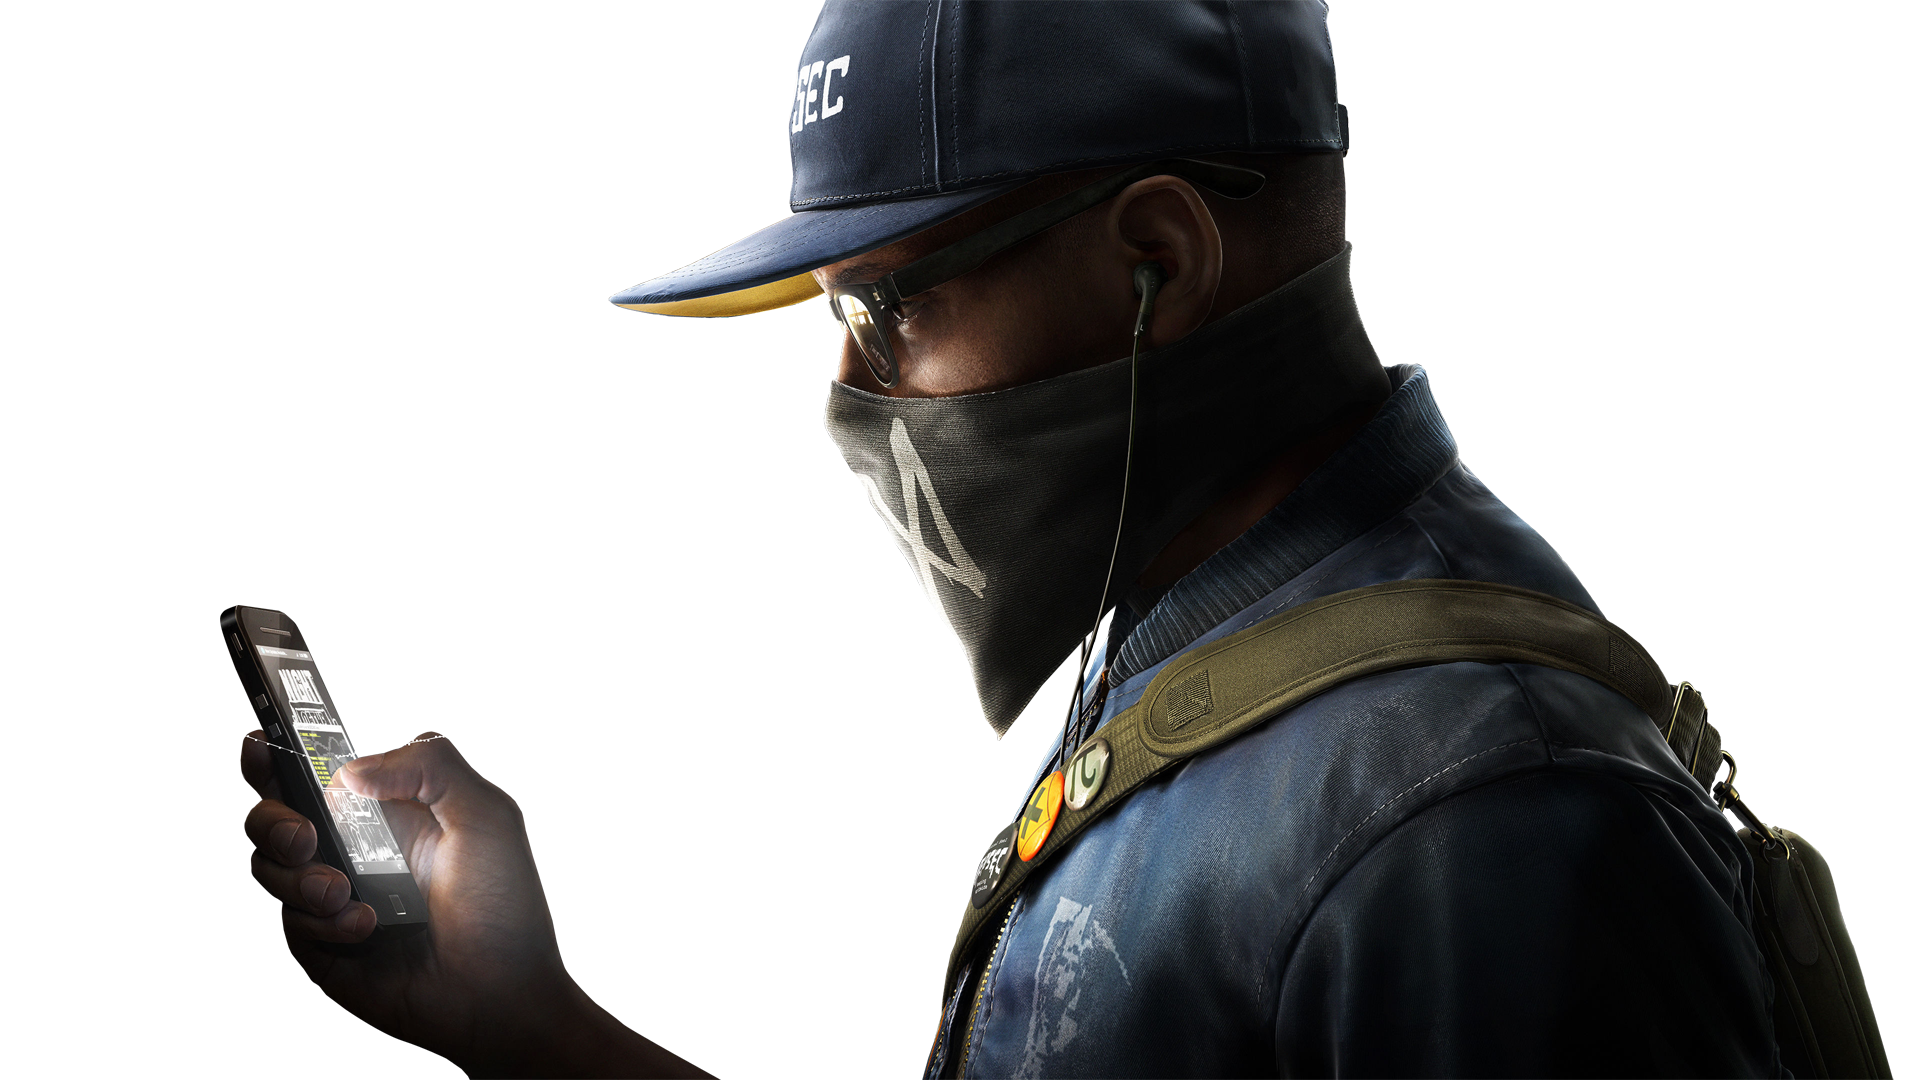 Watch dogs png. Hd transparent images pluspng